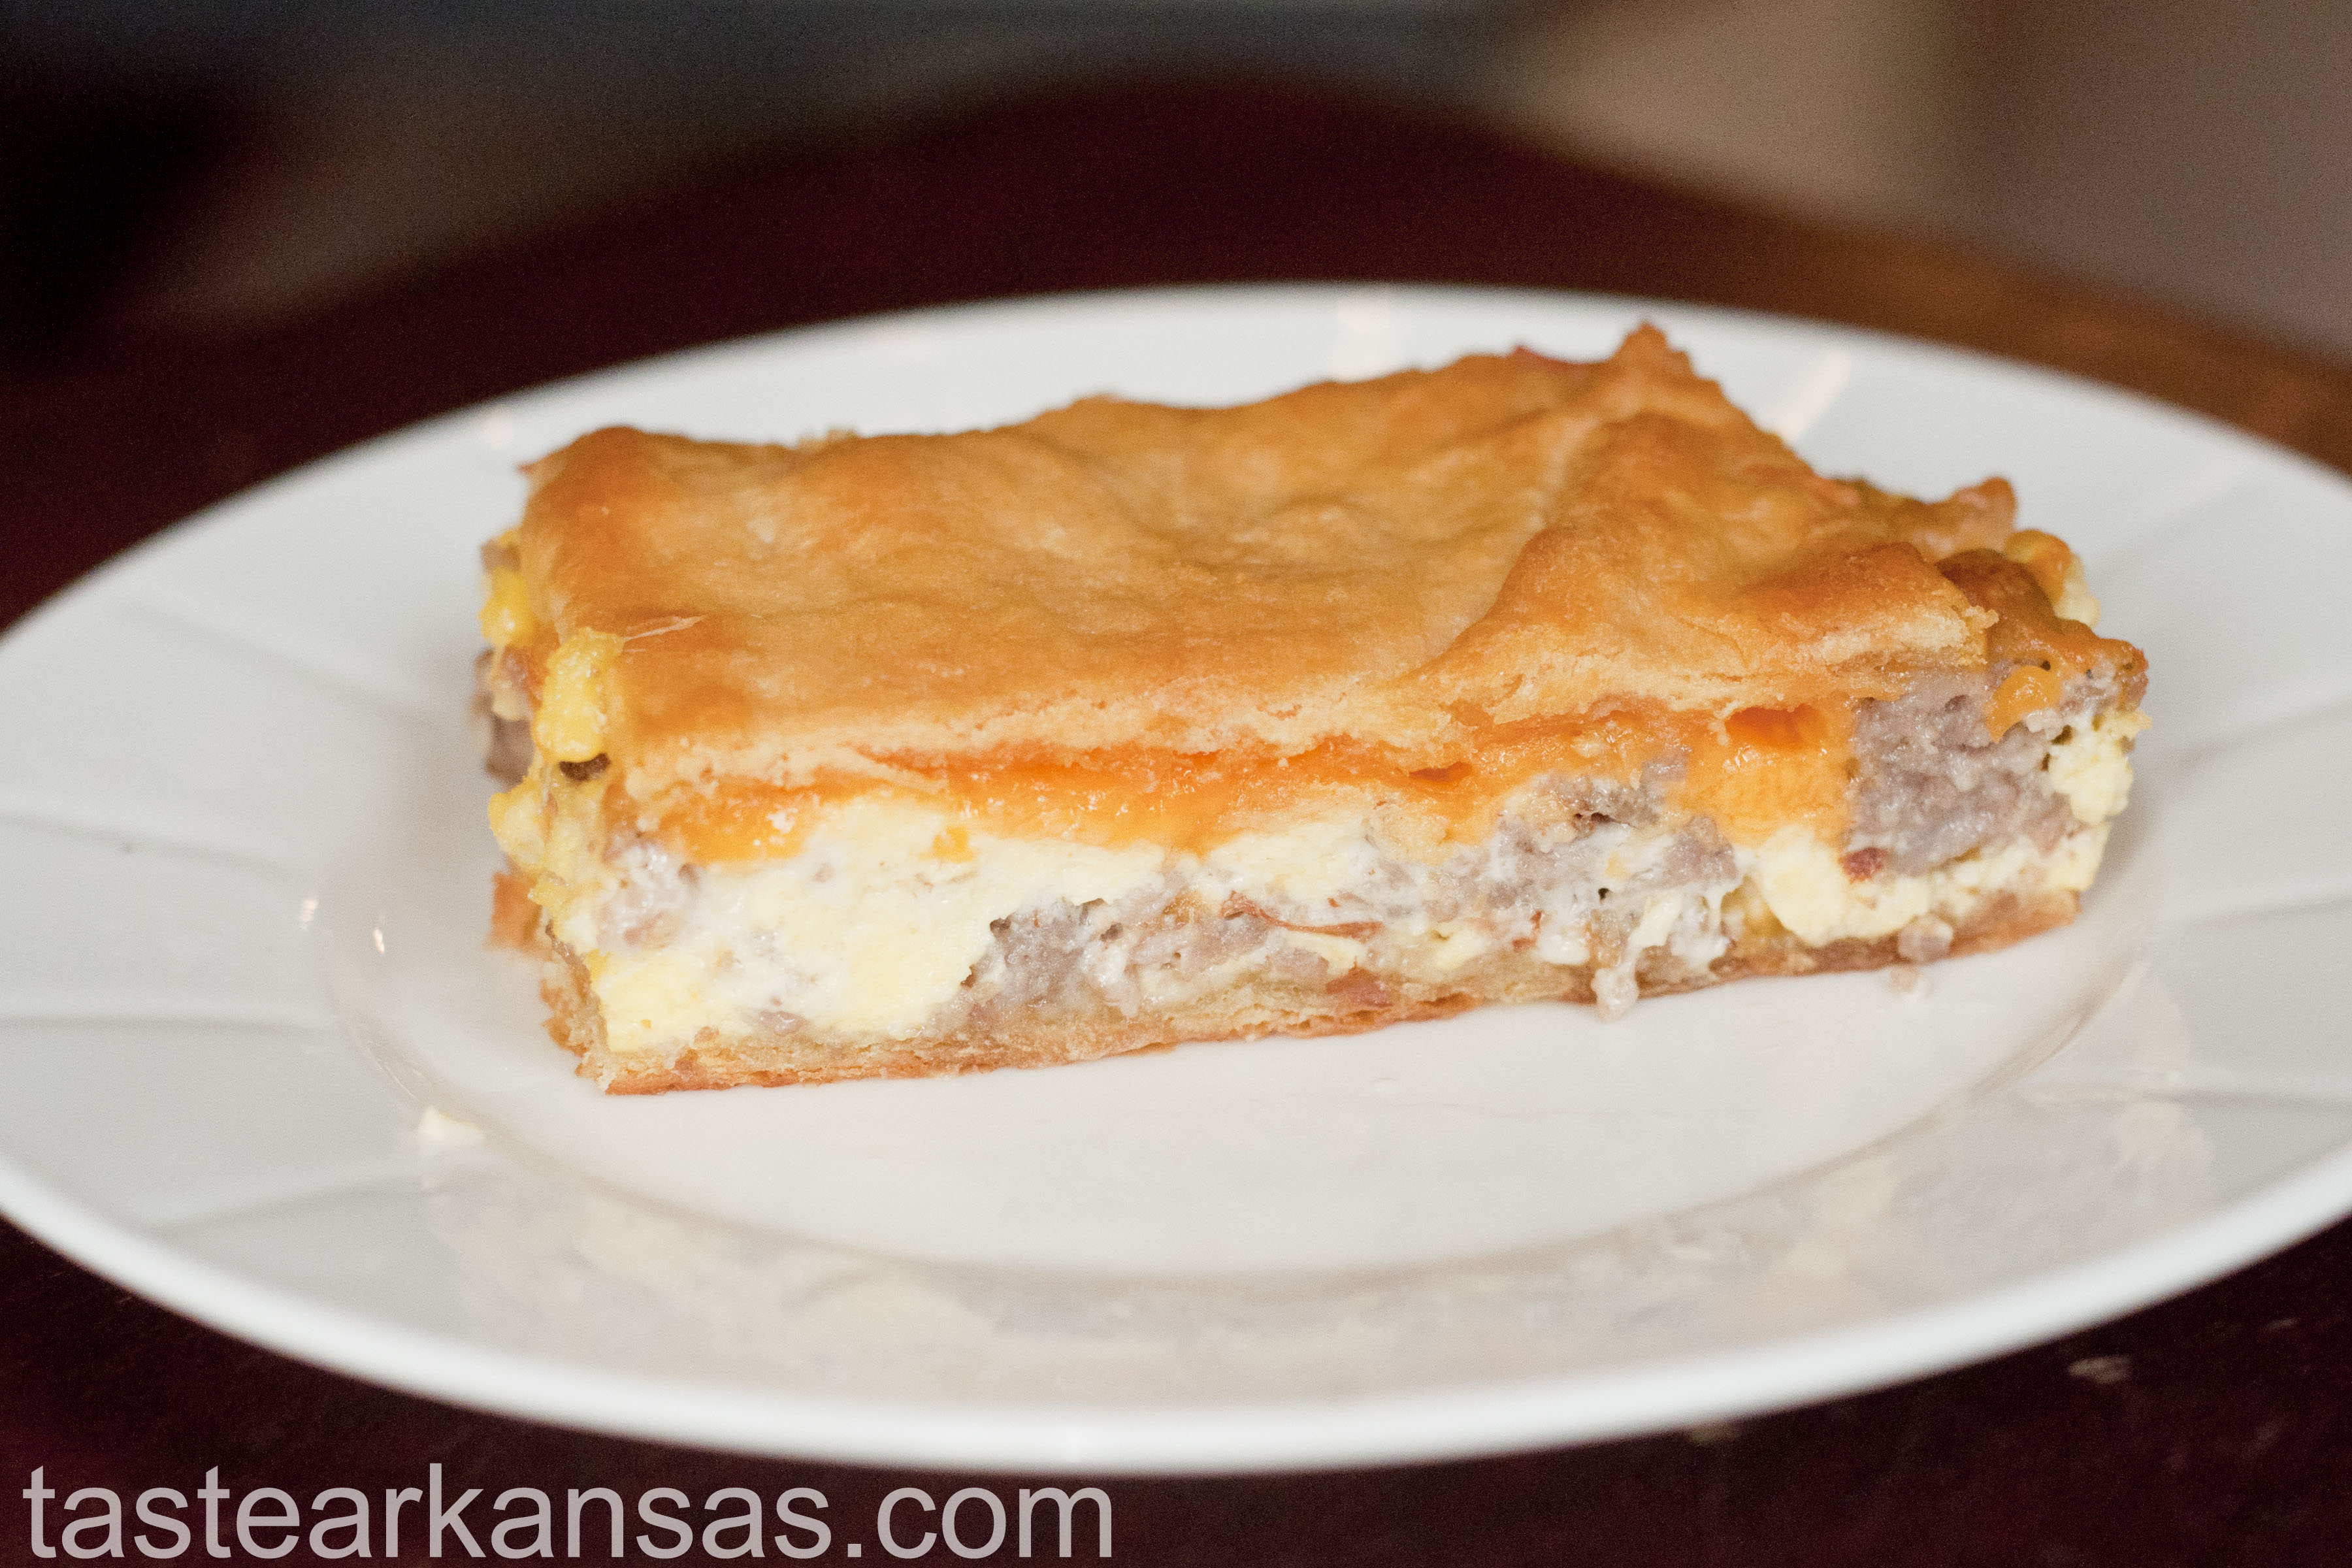 Sausage and Cream Cheese Breakfast Casserole